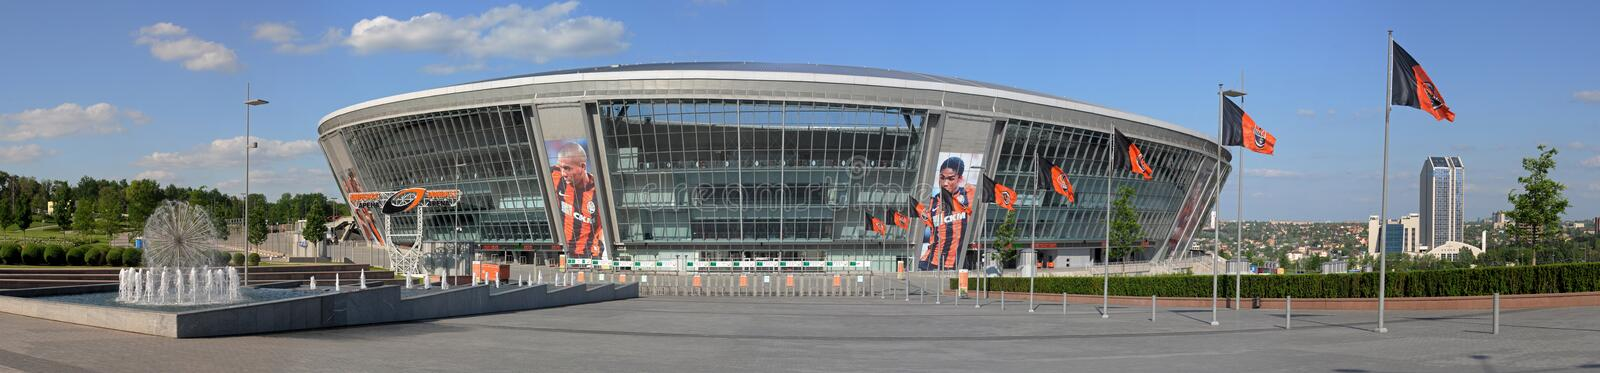 Donbass Arena. This is a panoramic view of modern ctadium. Donbass Arena or Donbas Arena is a stadium with a natural grass pitch in Donetsk, Ukraine ( disputed royalty free stock image